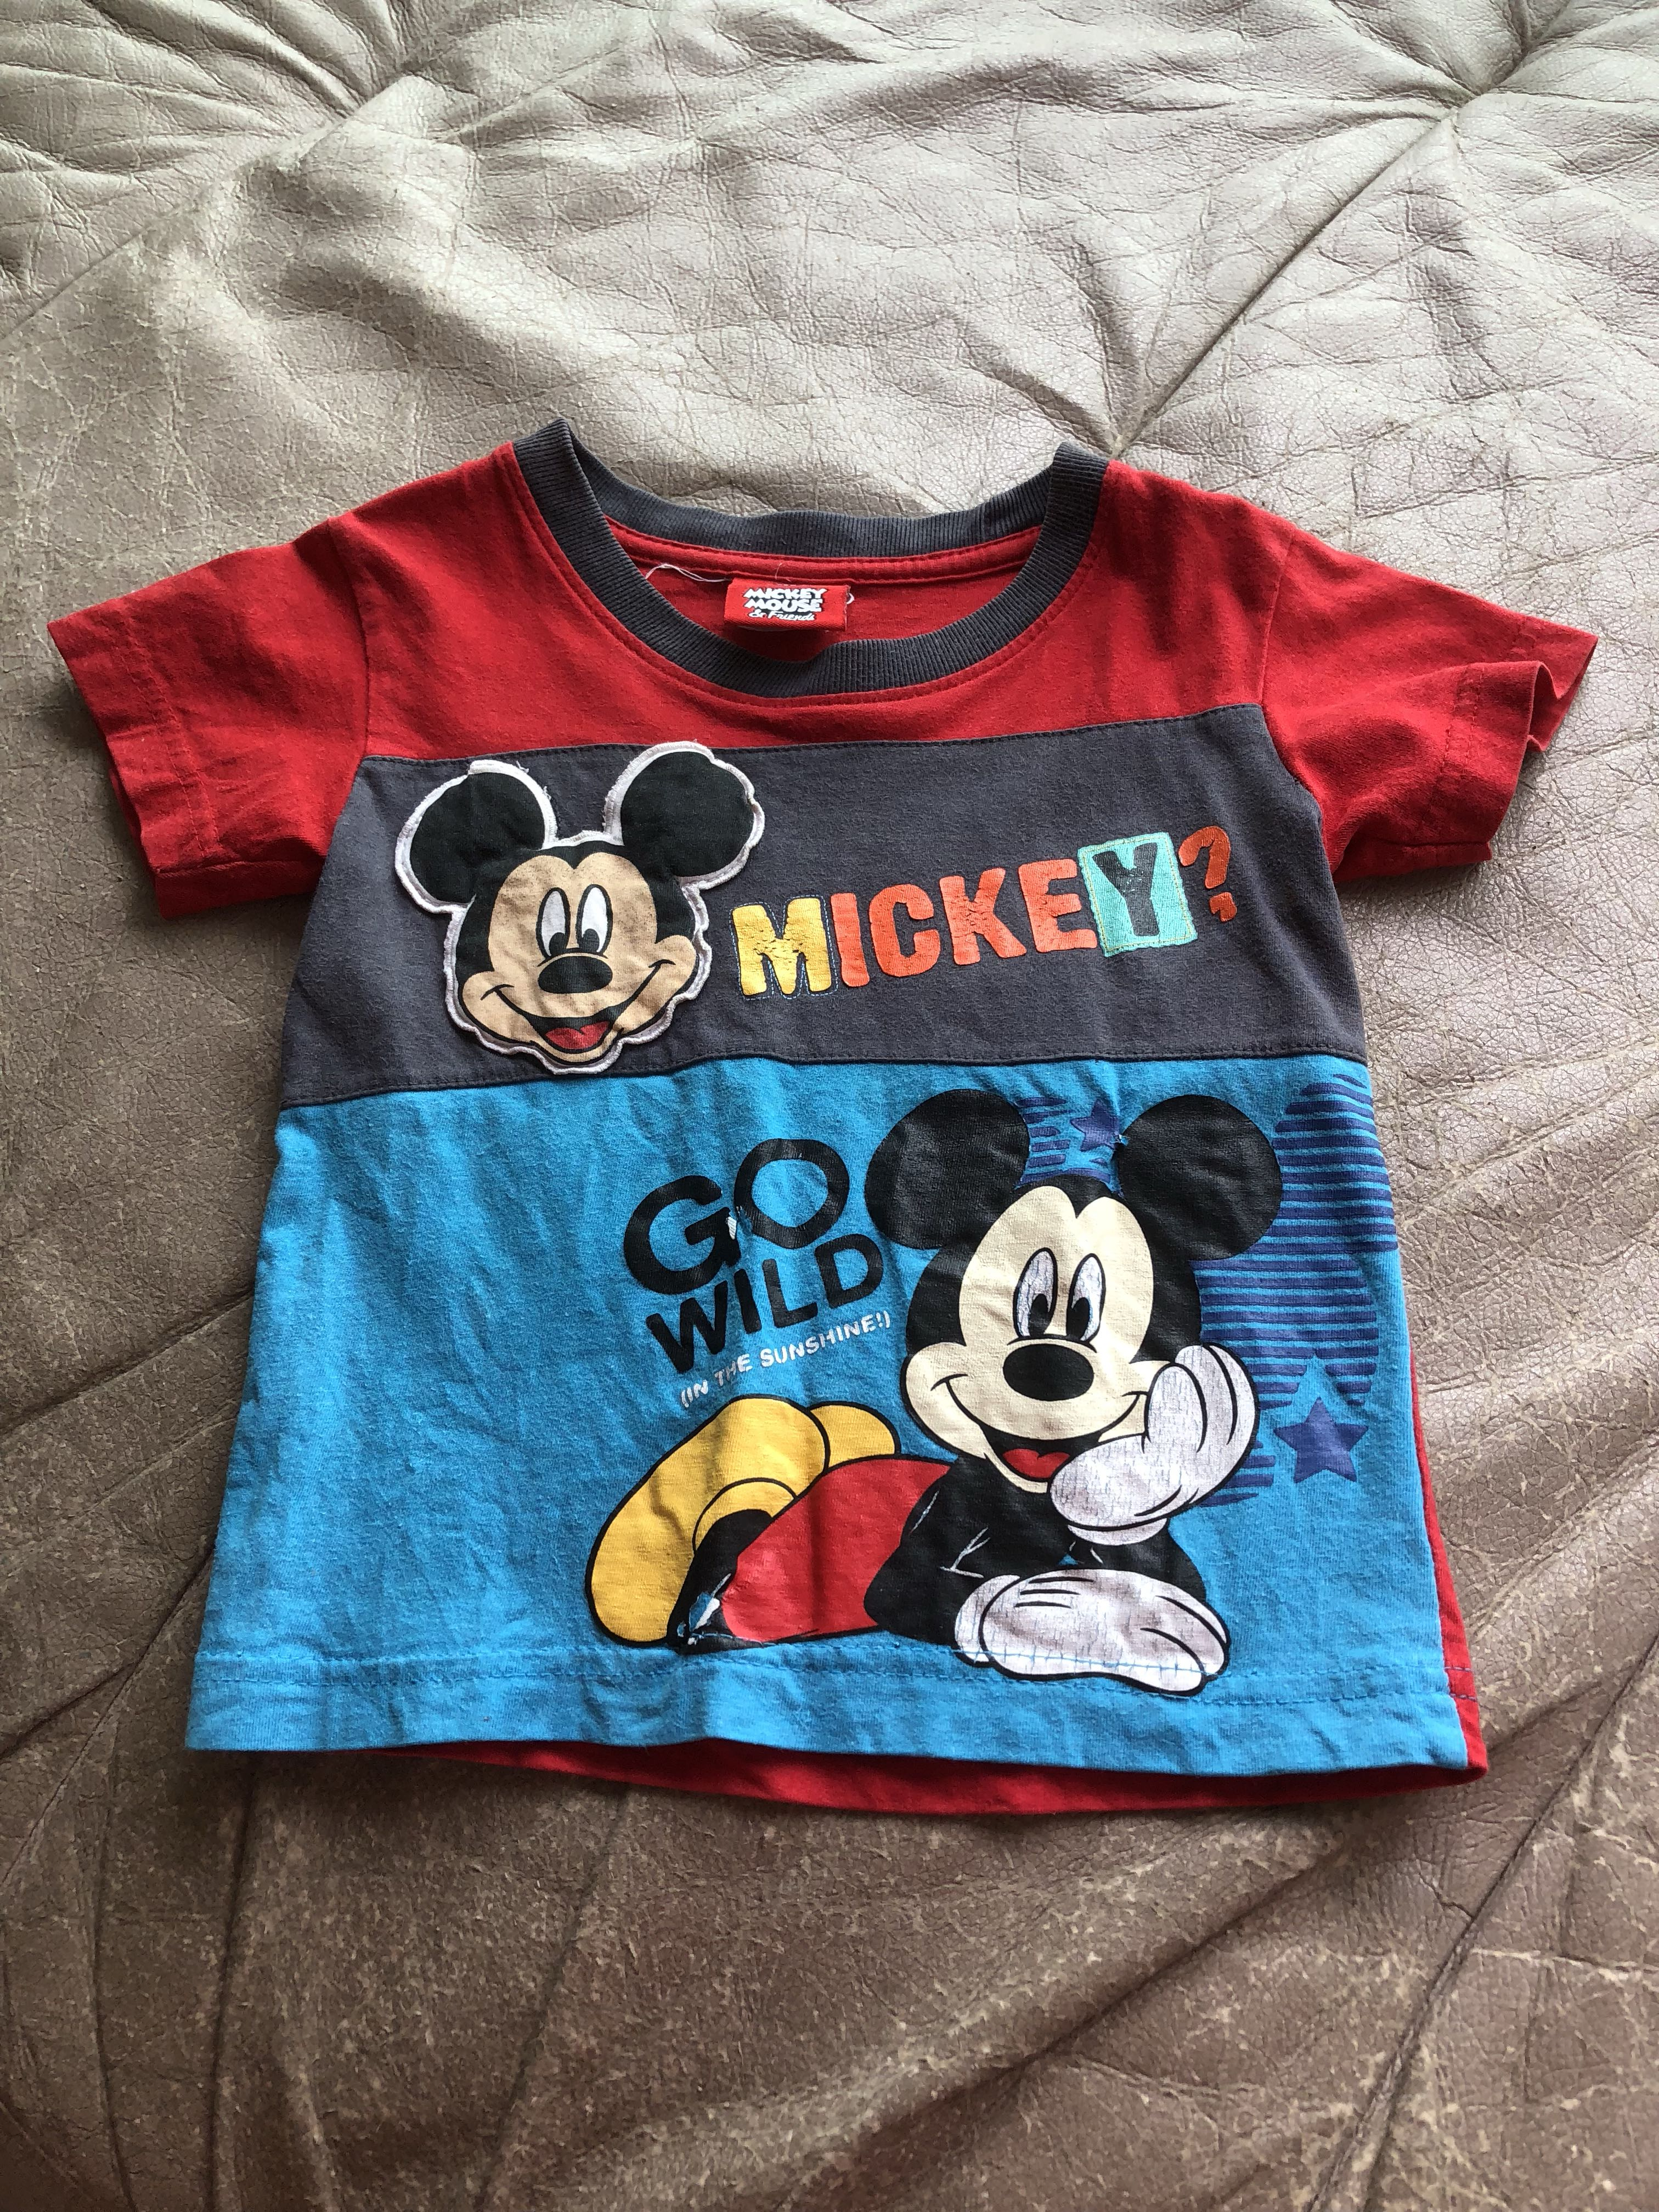 6f153d7a9 Mickey Mouse Kids Character Shirts & Clothing - Macy's